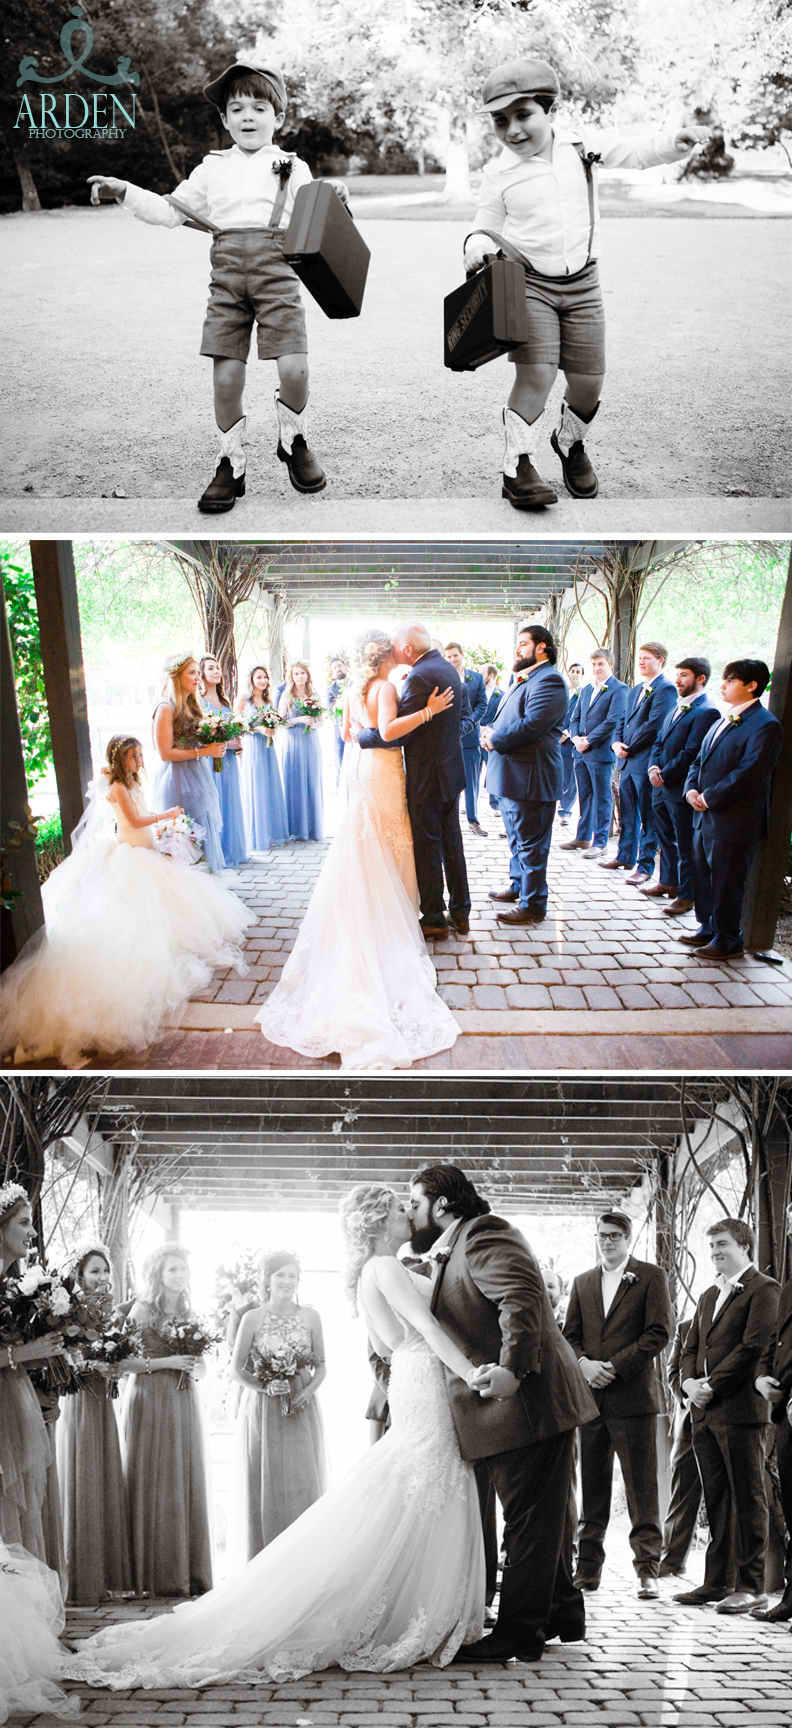 From father to groom.